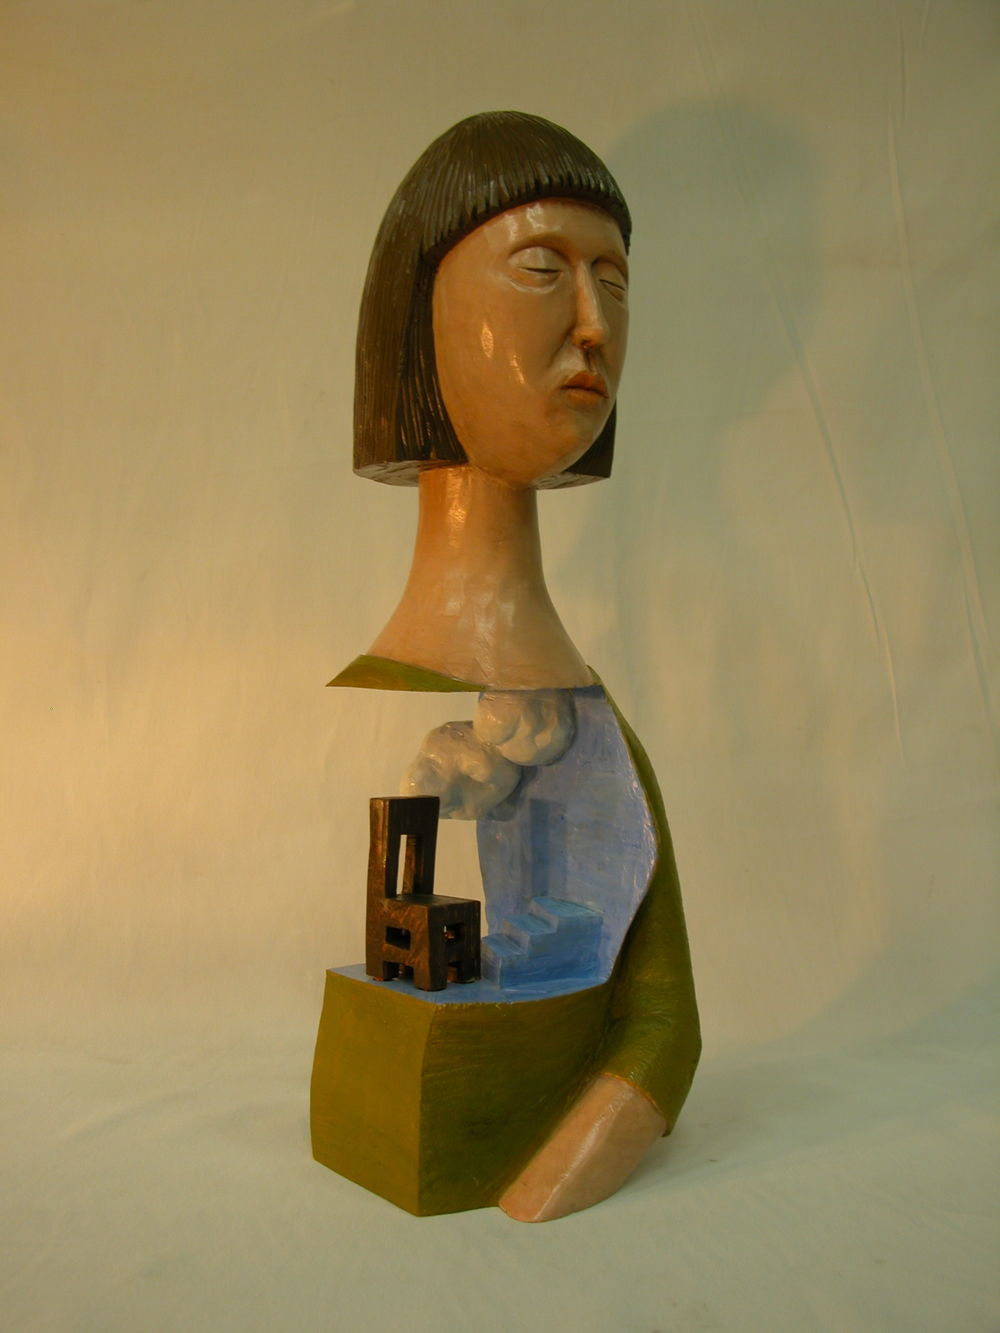 "Days of waiting-woman.W10.2""L9.8""H20.4"".Acrylic colors on Wood.2007"